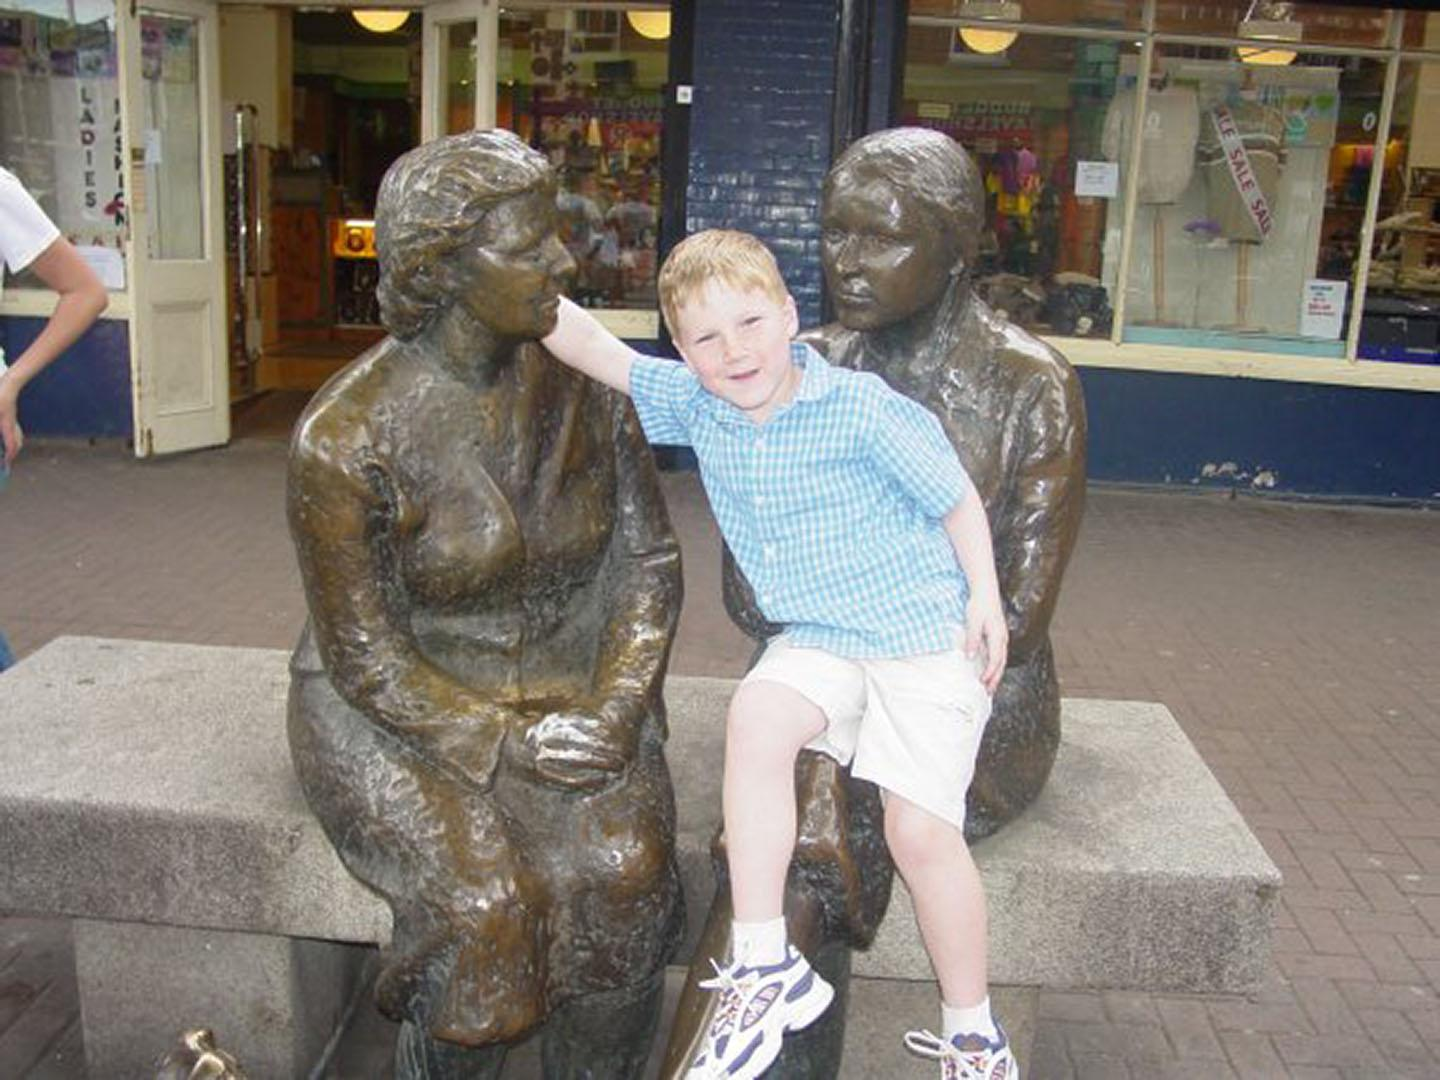 Conor during a simpler time, before the inconveniences of the world made him a cruel, cold man